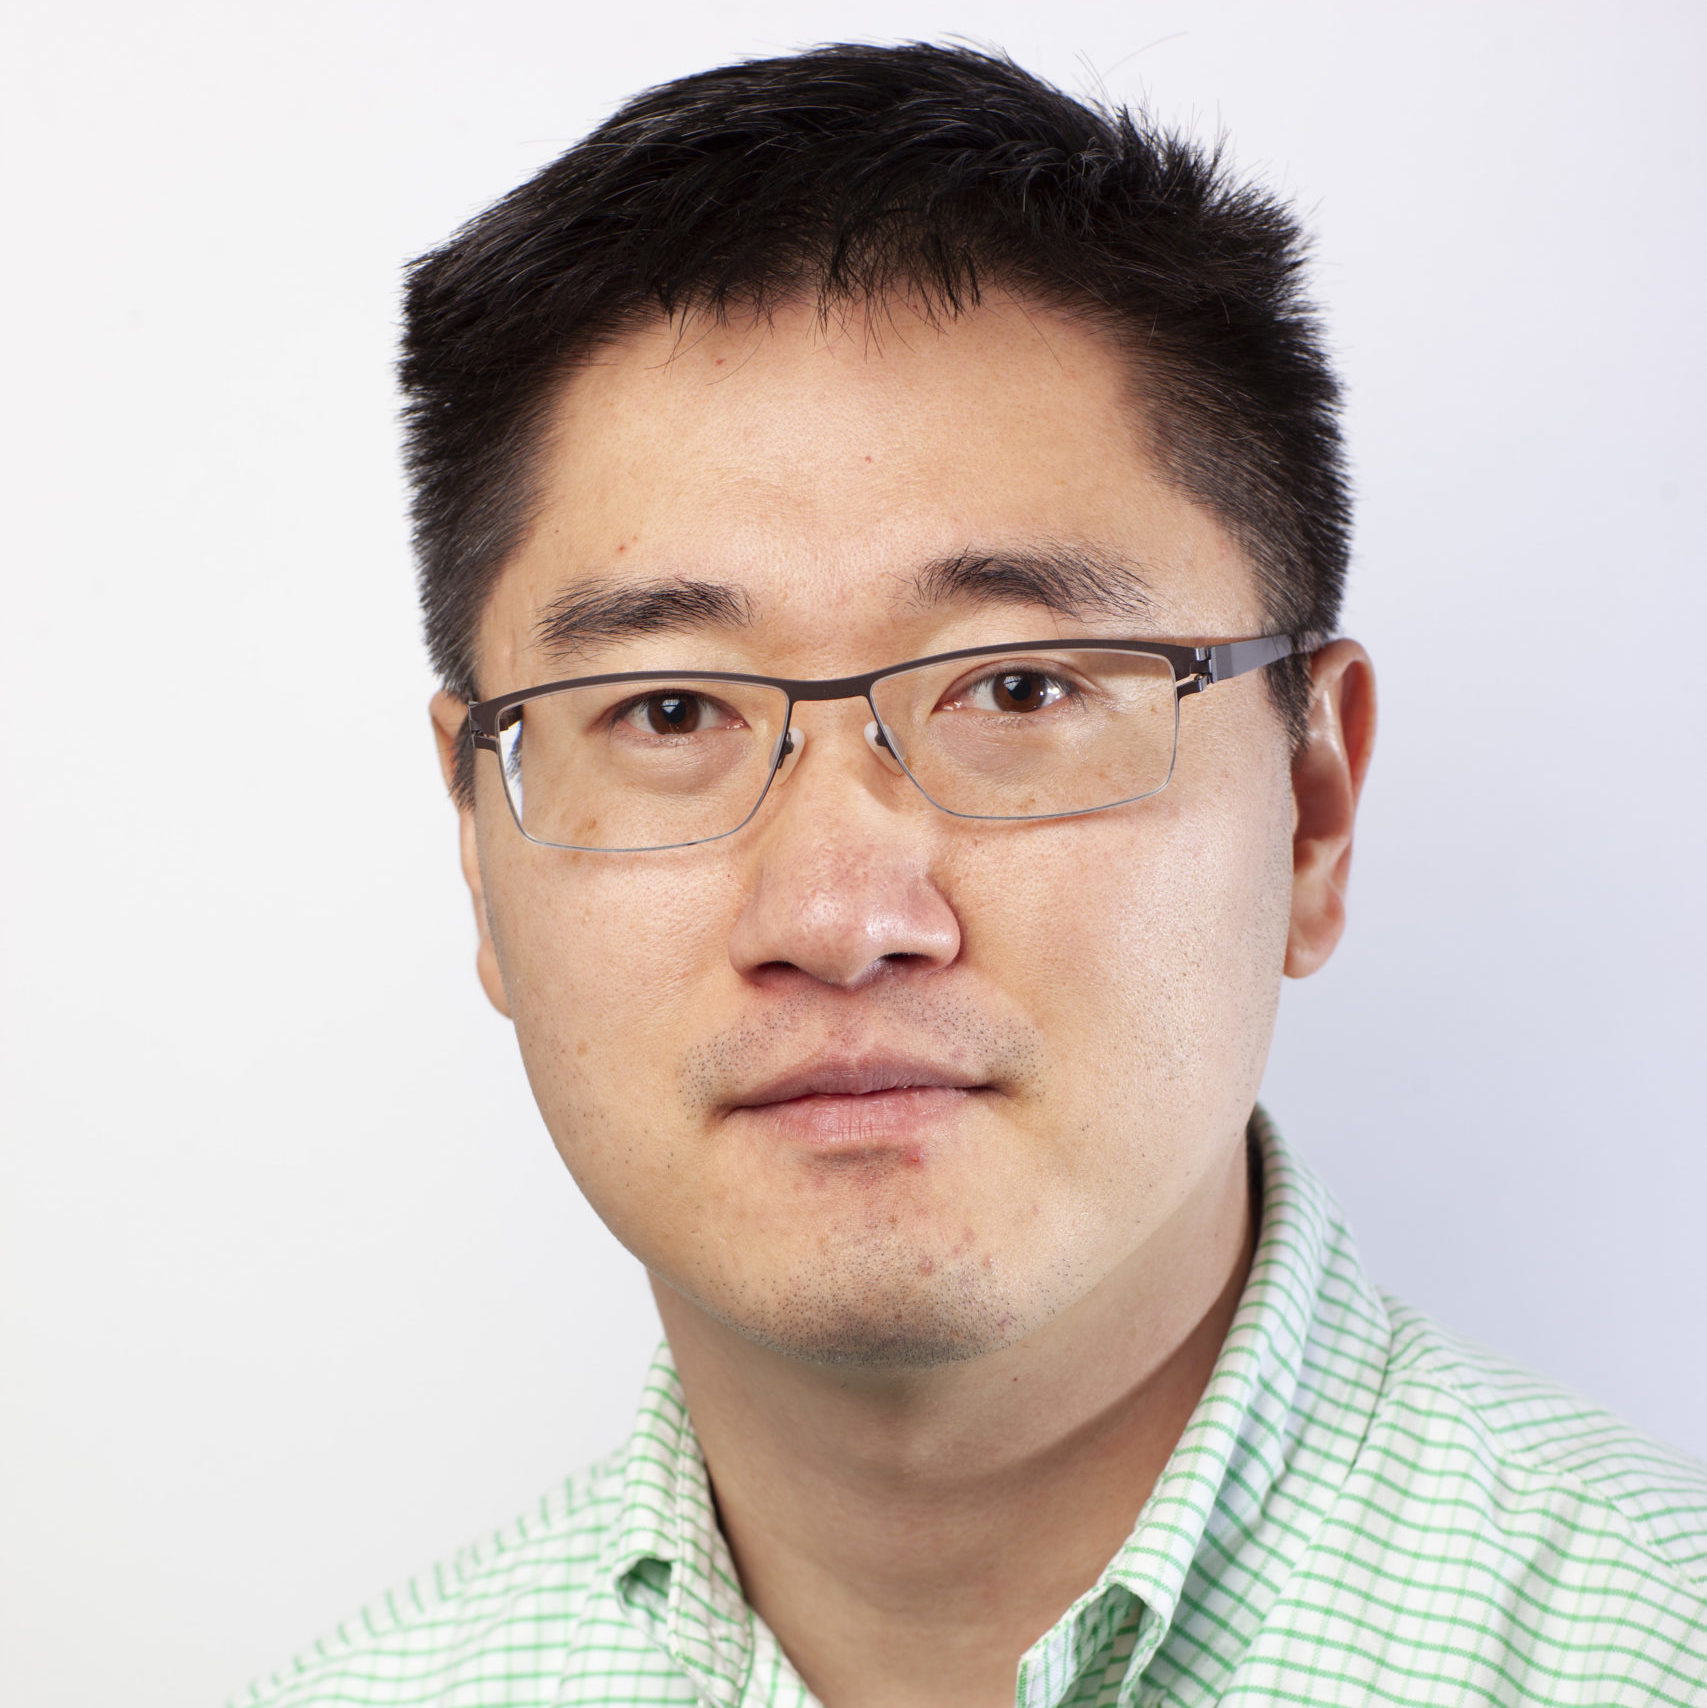 Zongxing Wang   Manager   Polsky Science Ventures at University of Chicago Polsky Center for Entrepreneurship and Innovation